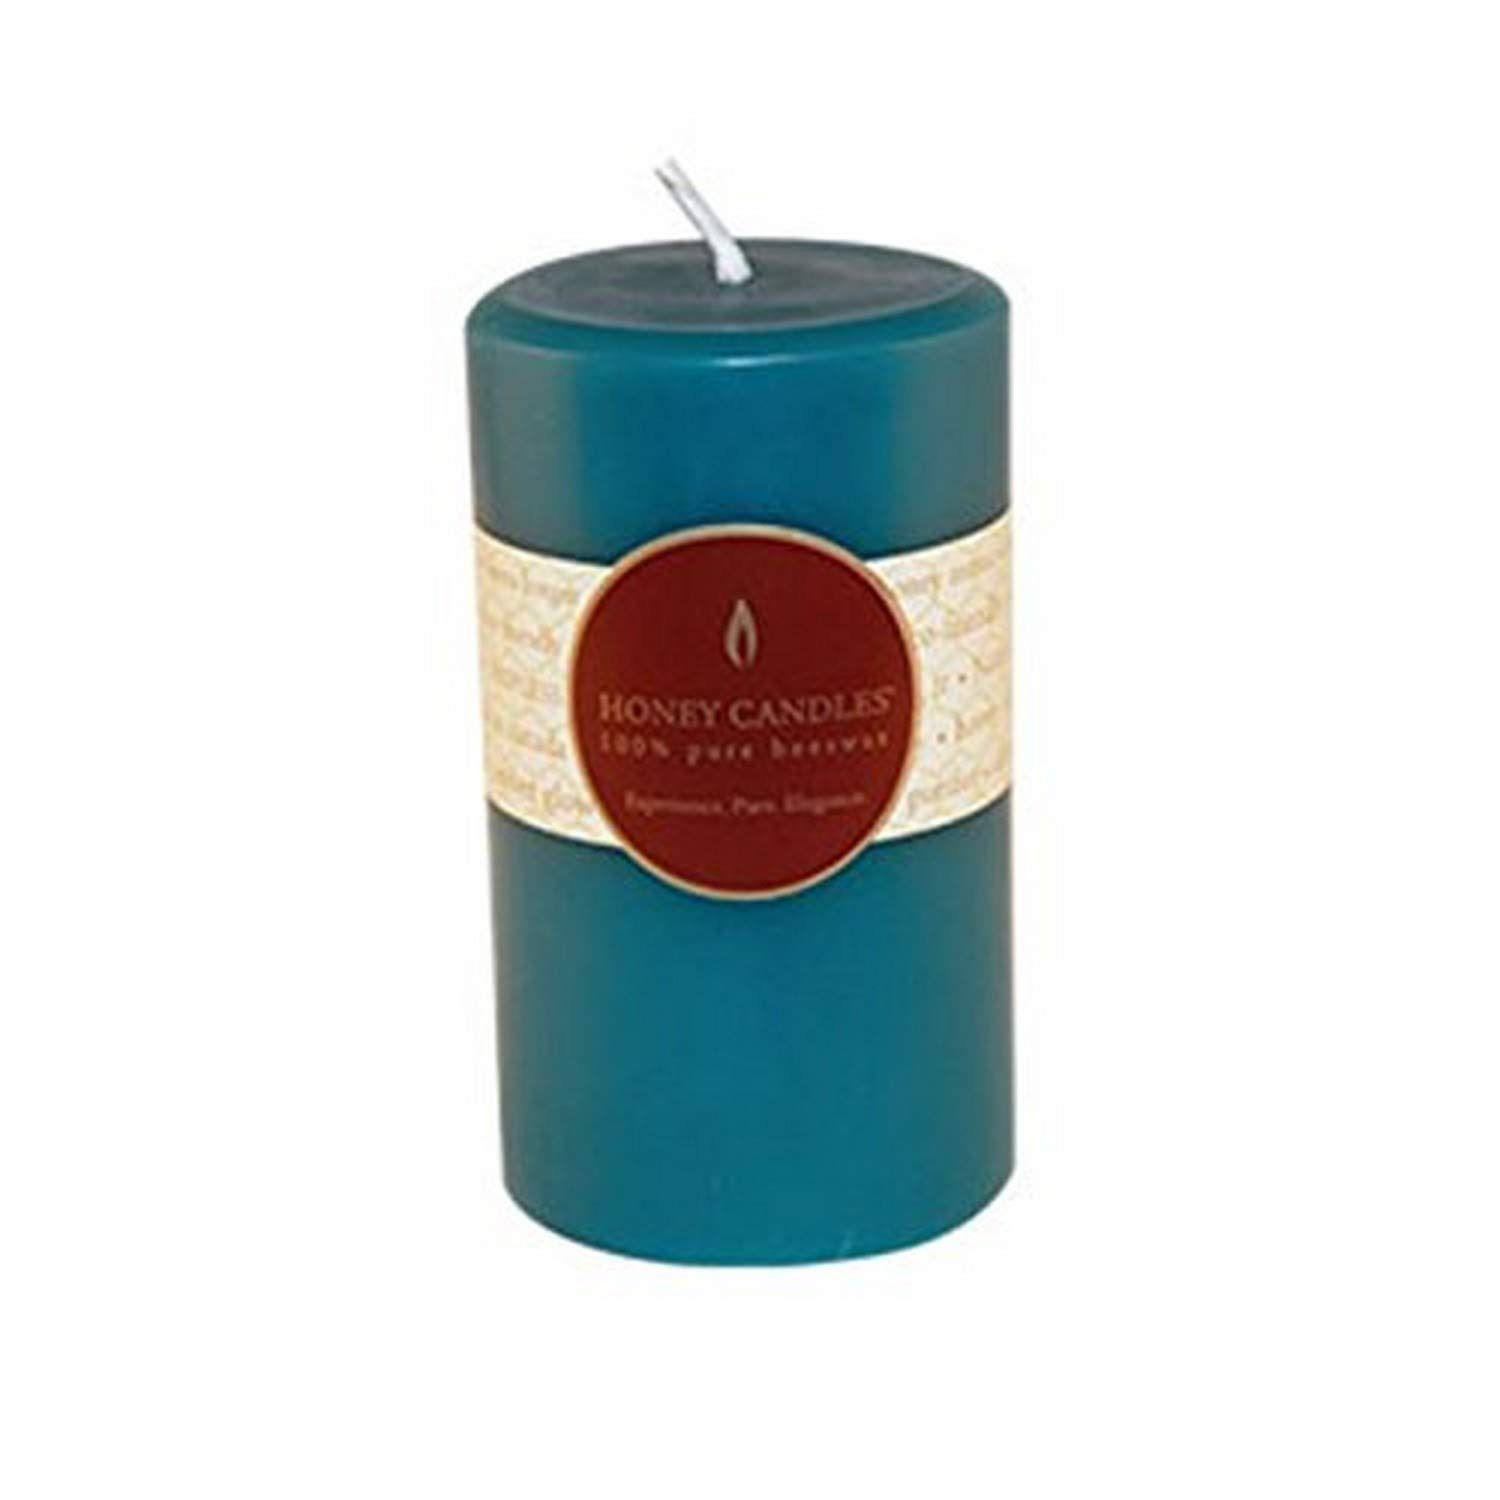 Honey Candles Pure Beeswax 5'' Pillar-Glacier Teal